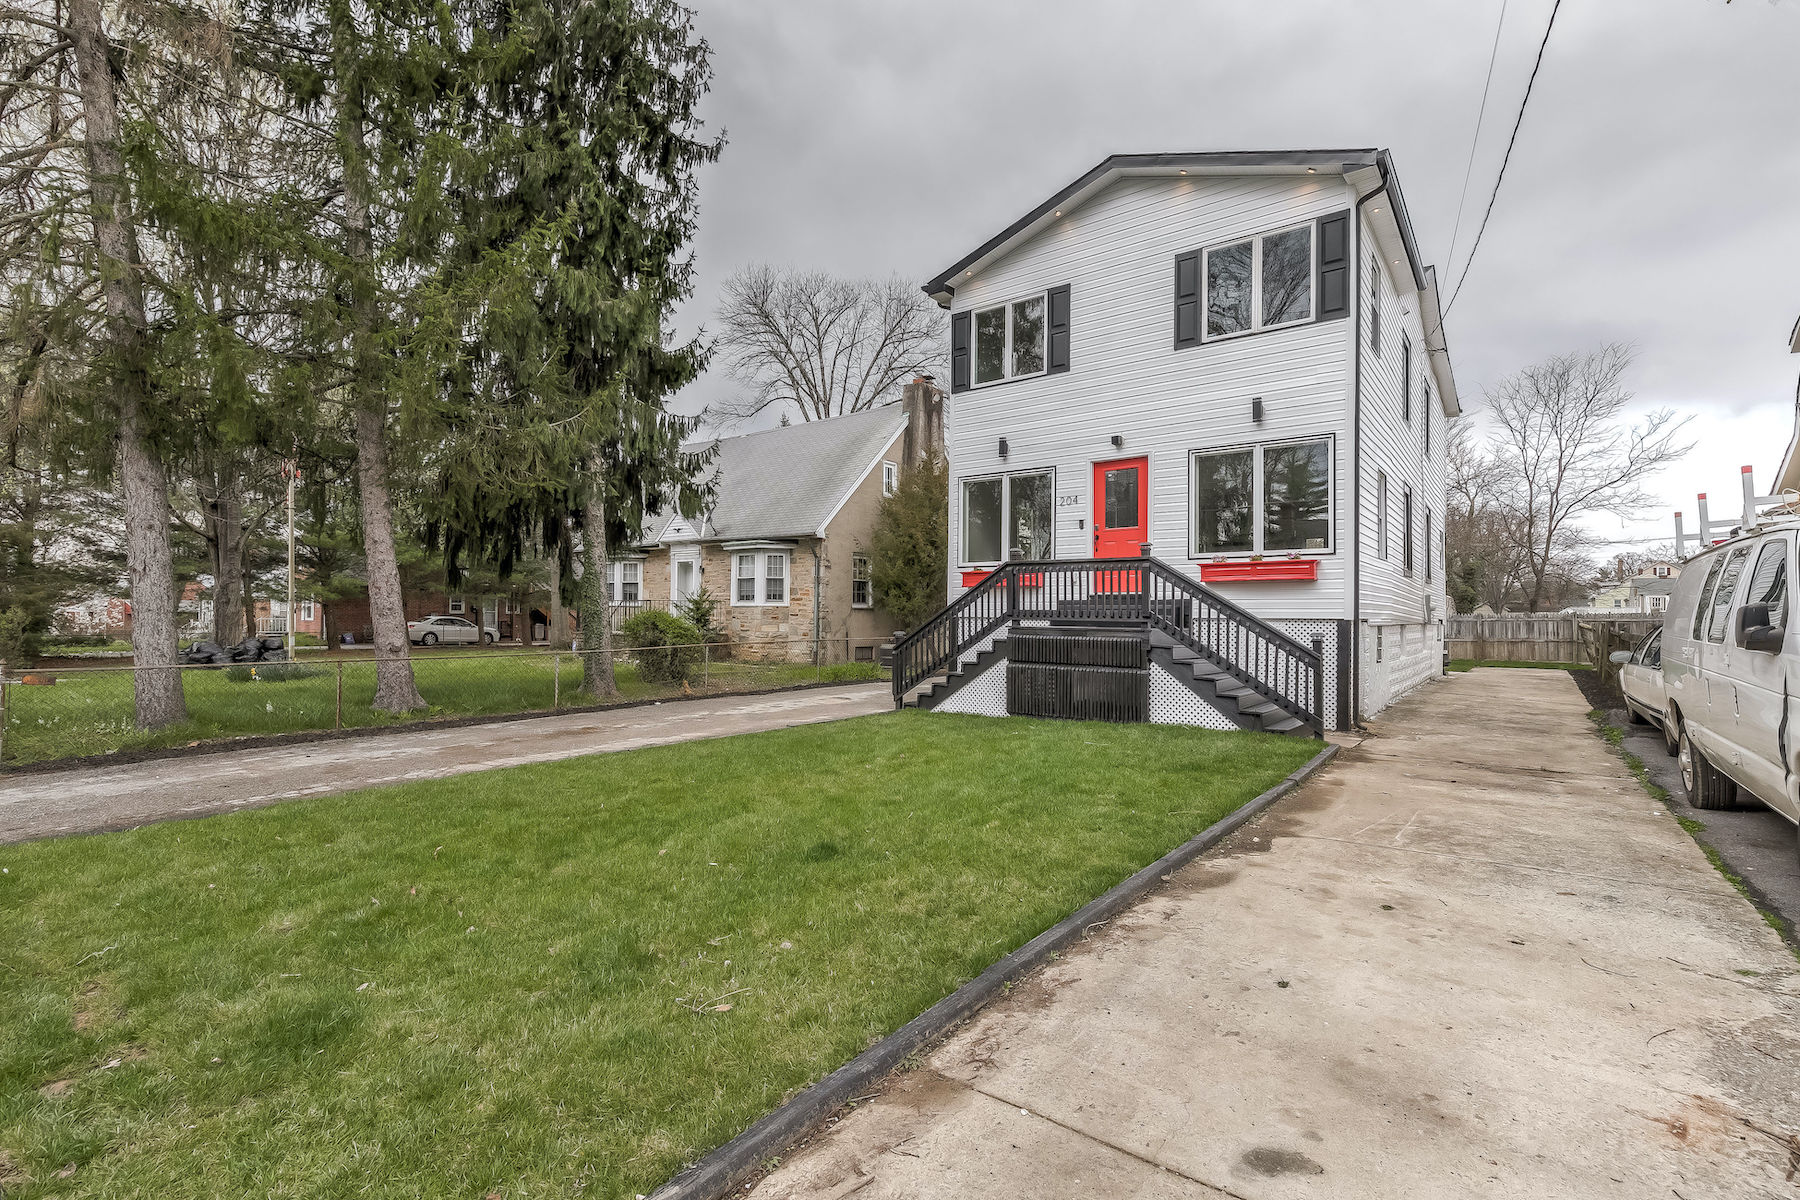 Single Family Homes for Sale at Beaming Light to the Neighborhood 204 West Slade Avenue Pikesville, Maryland 21208 United States